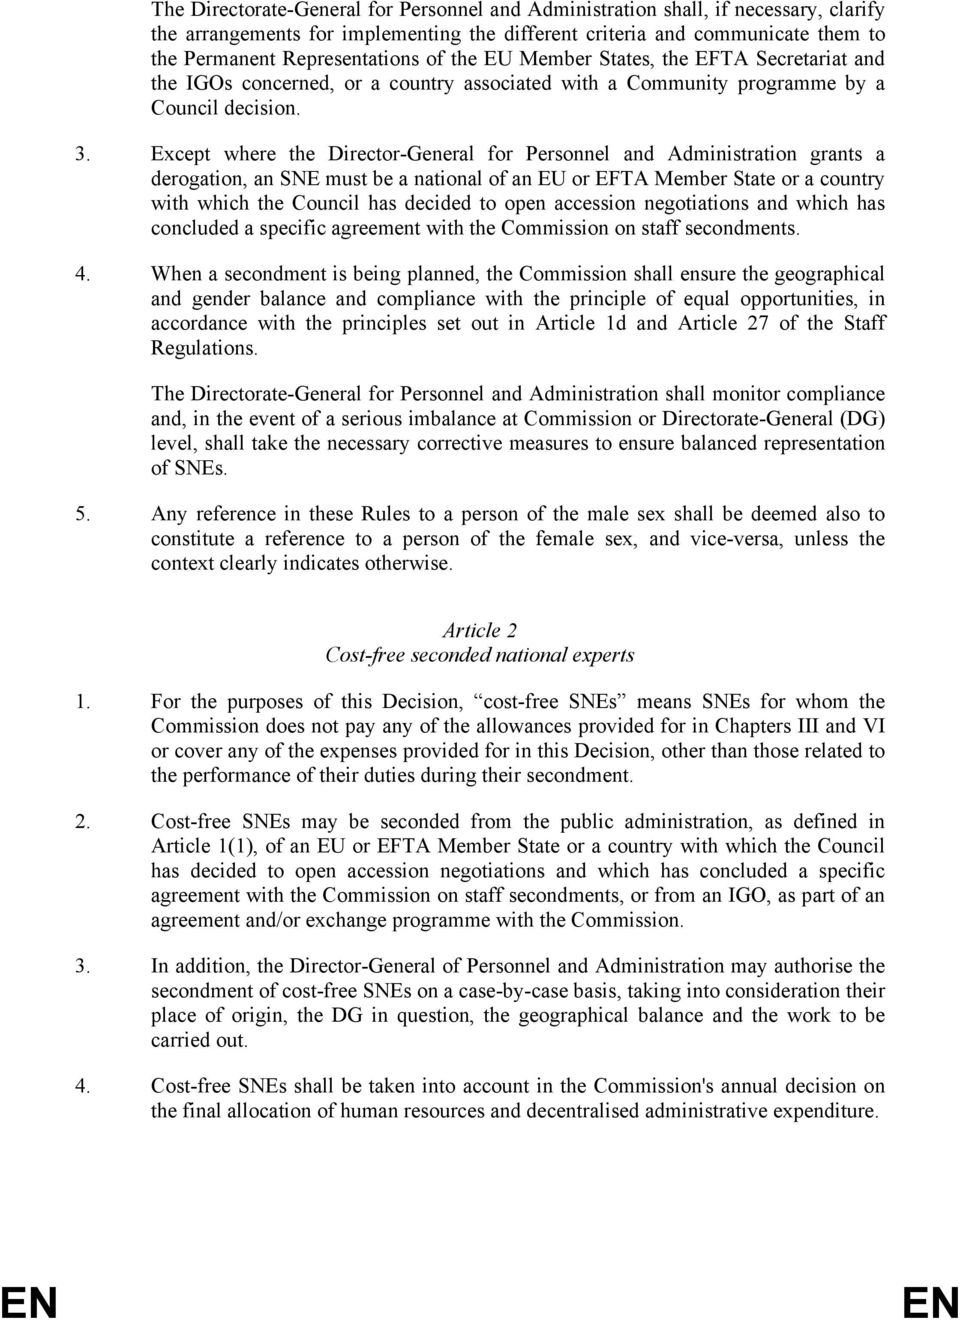 Except where the Director-General for Personnel and Administration grants a derogation, an SNE must be a national of an EU or EFTA Member State or a country with which the Council has decided to open